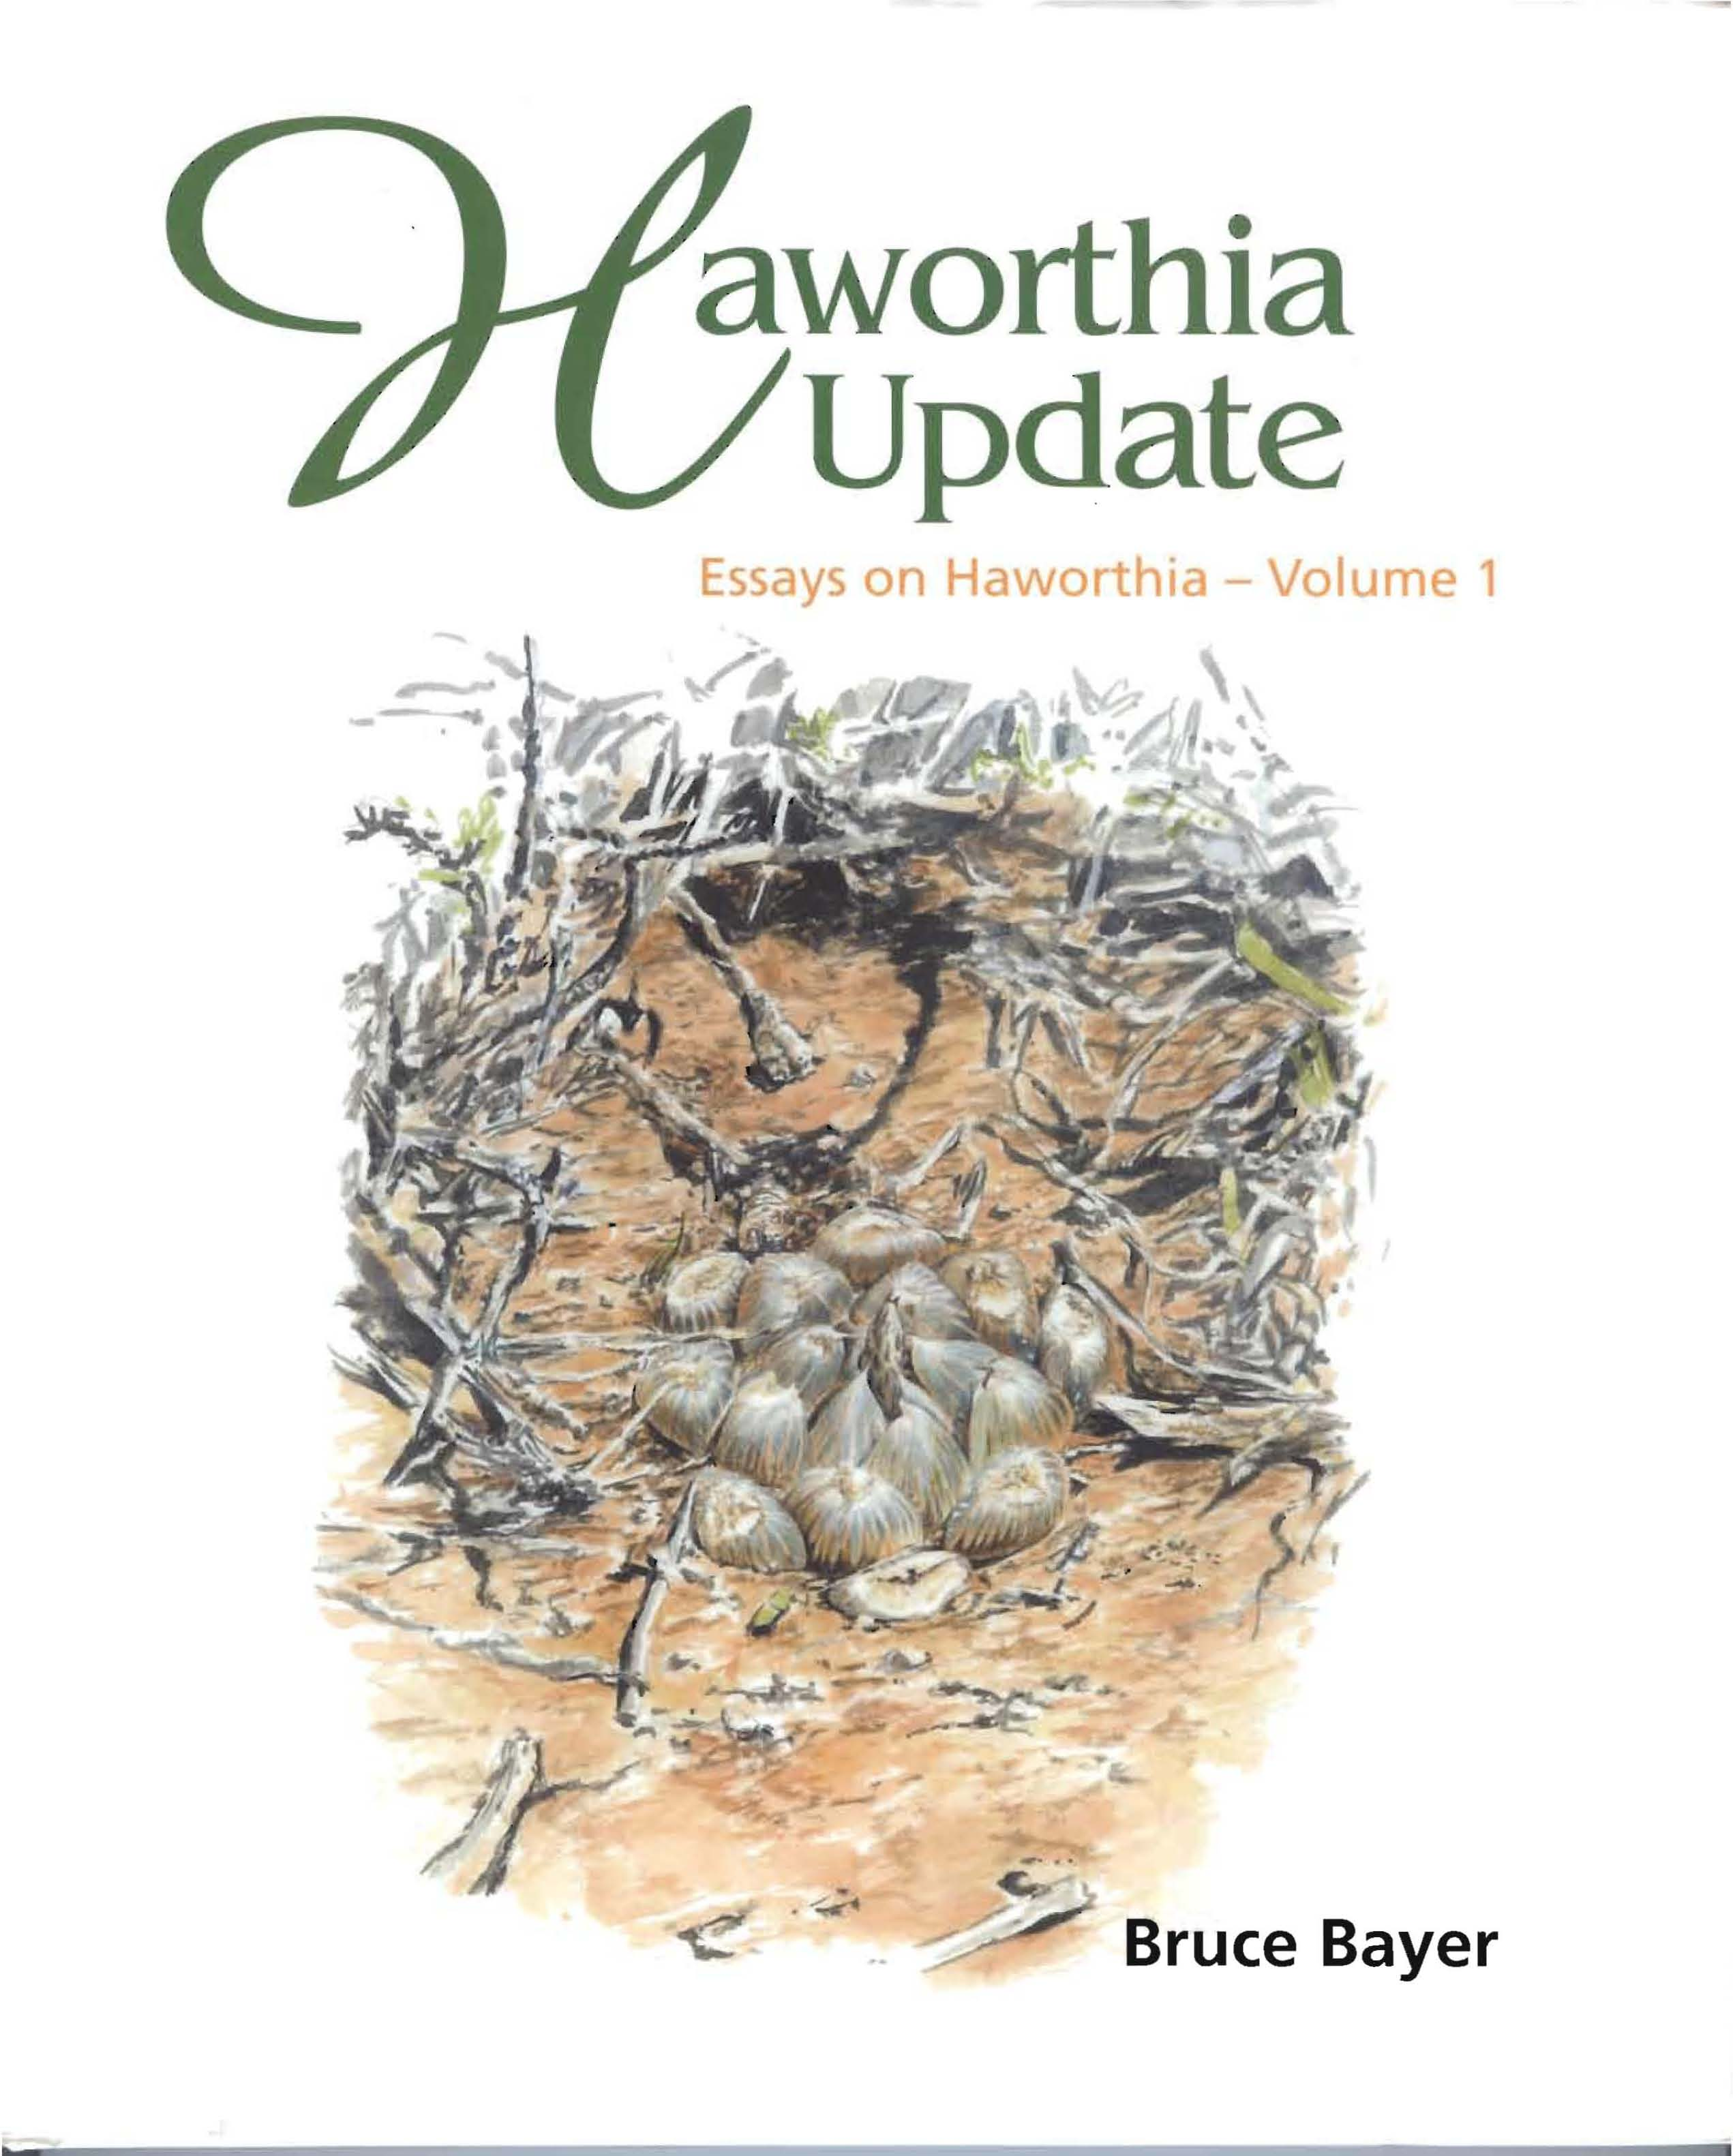 Haworthia Updates vol. 1